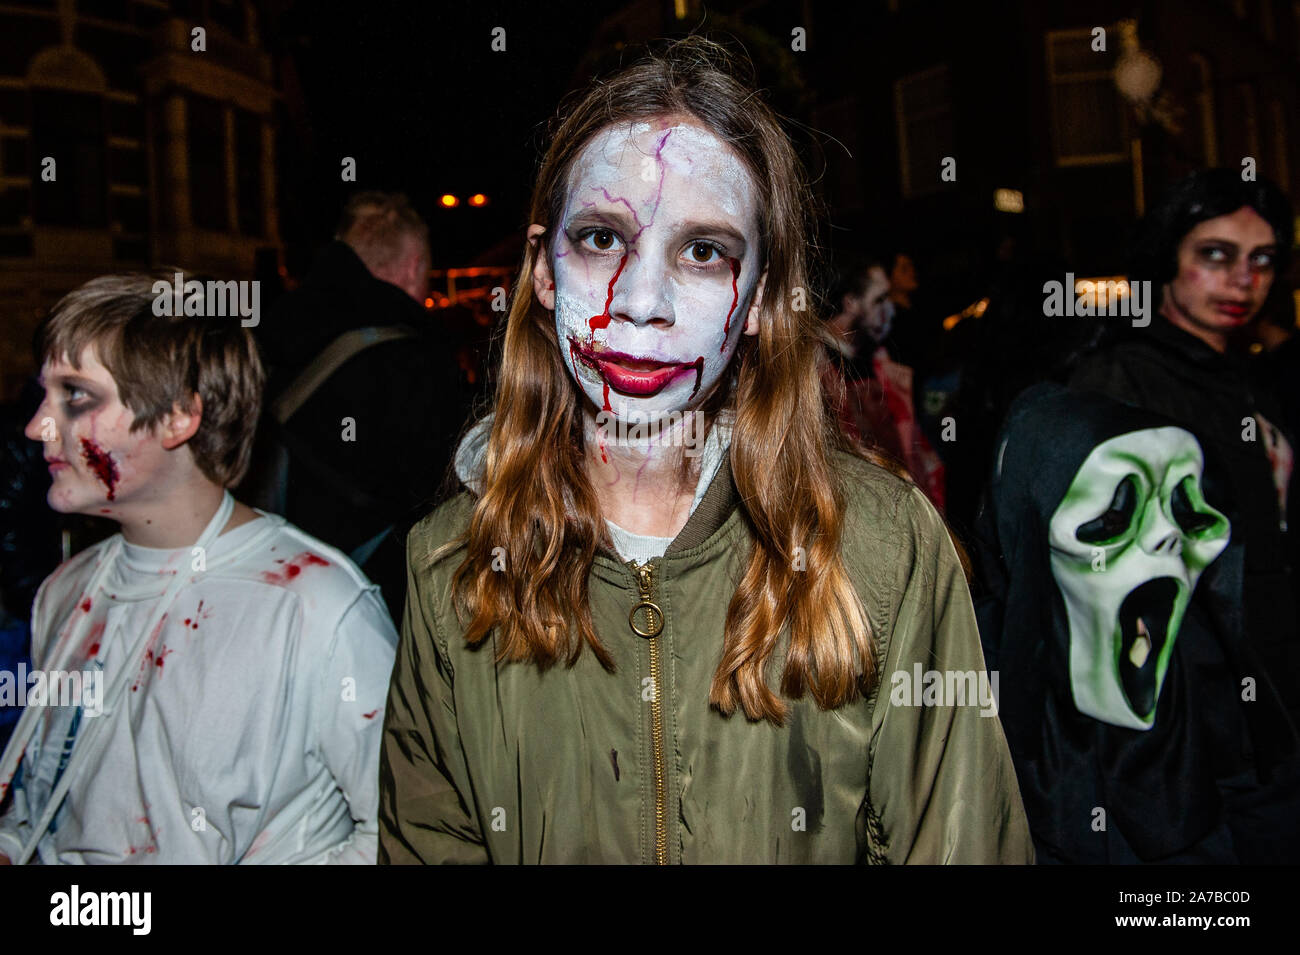 Halloween Arnhem.Arnhem Netherlands 31st Oct 2019 A Girl Wearing A Zombie Make Up Looks At The Camera During The Parade As In Previous Years The Zombie Walk Took Place Around The Center Of Arnhem